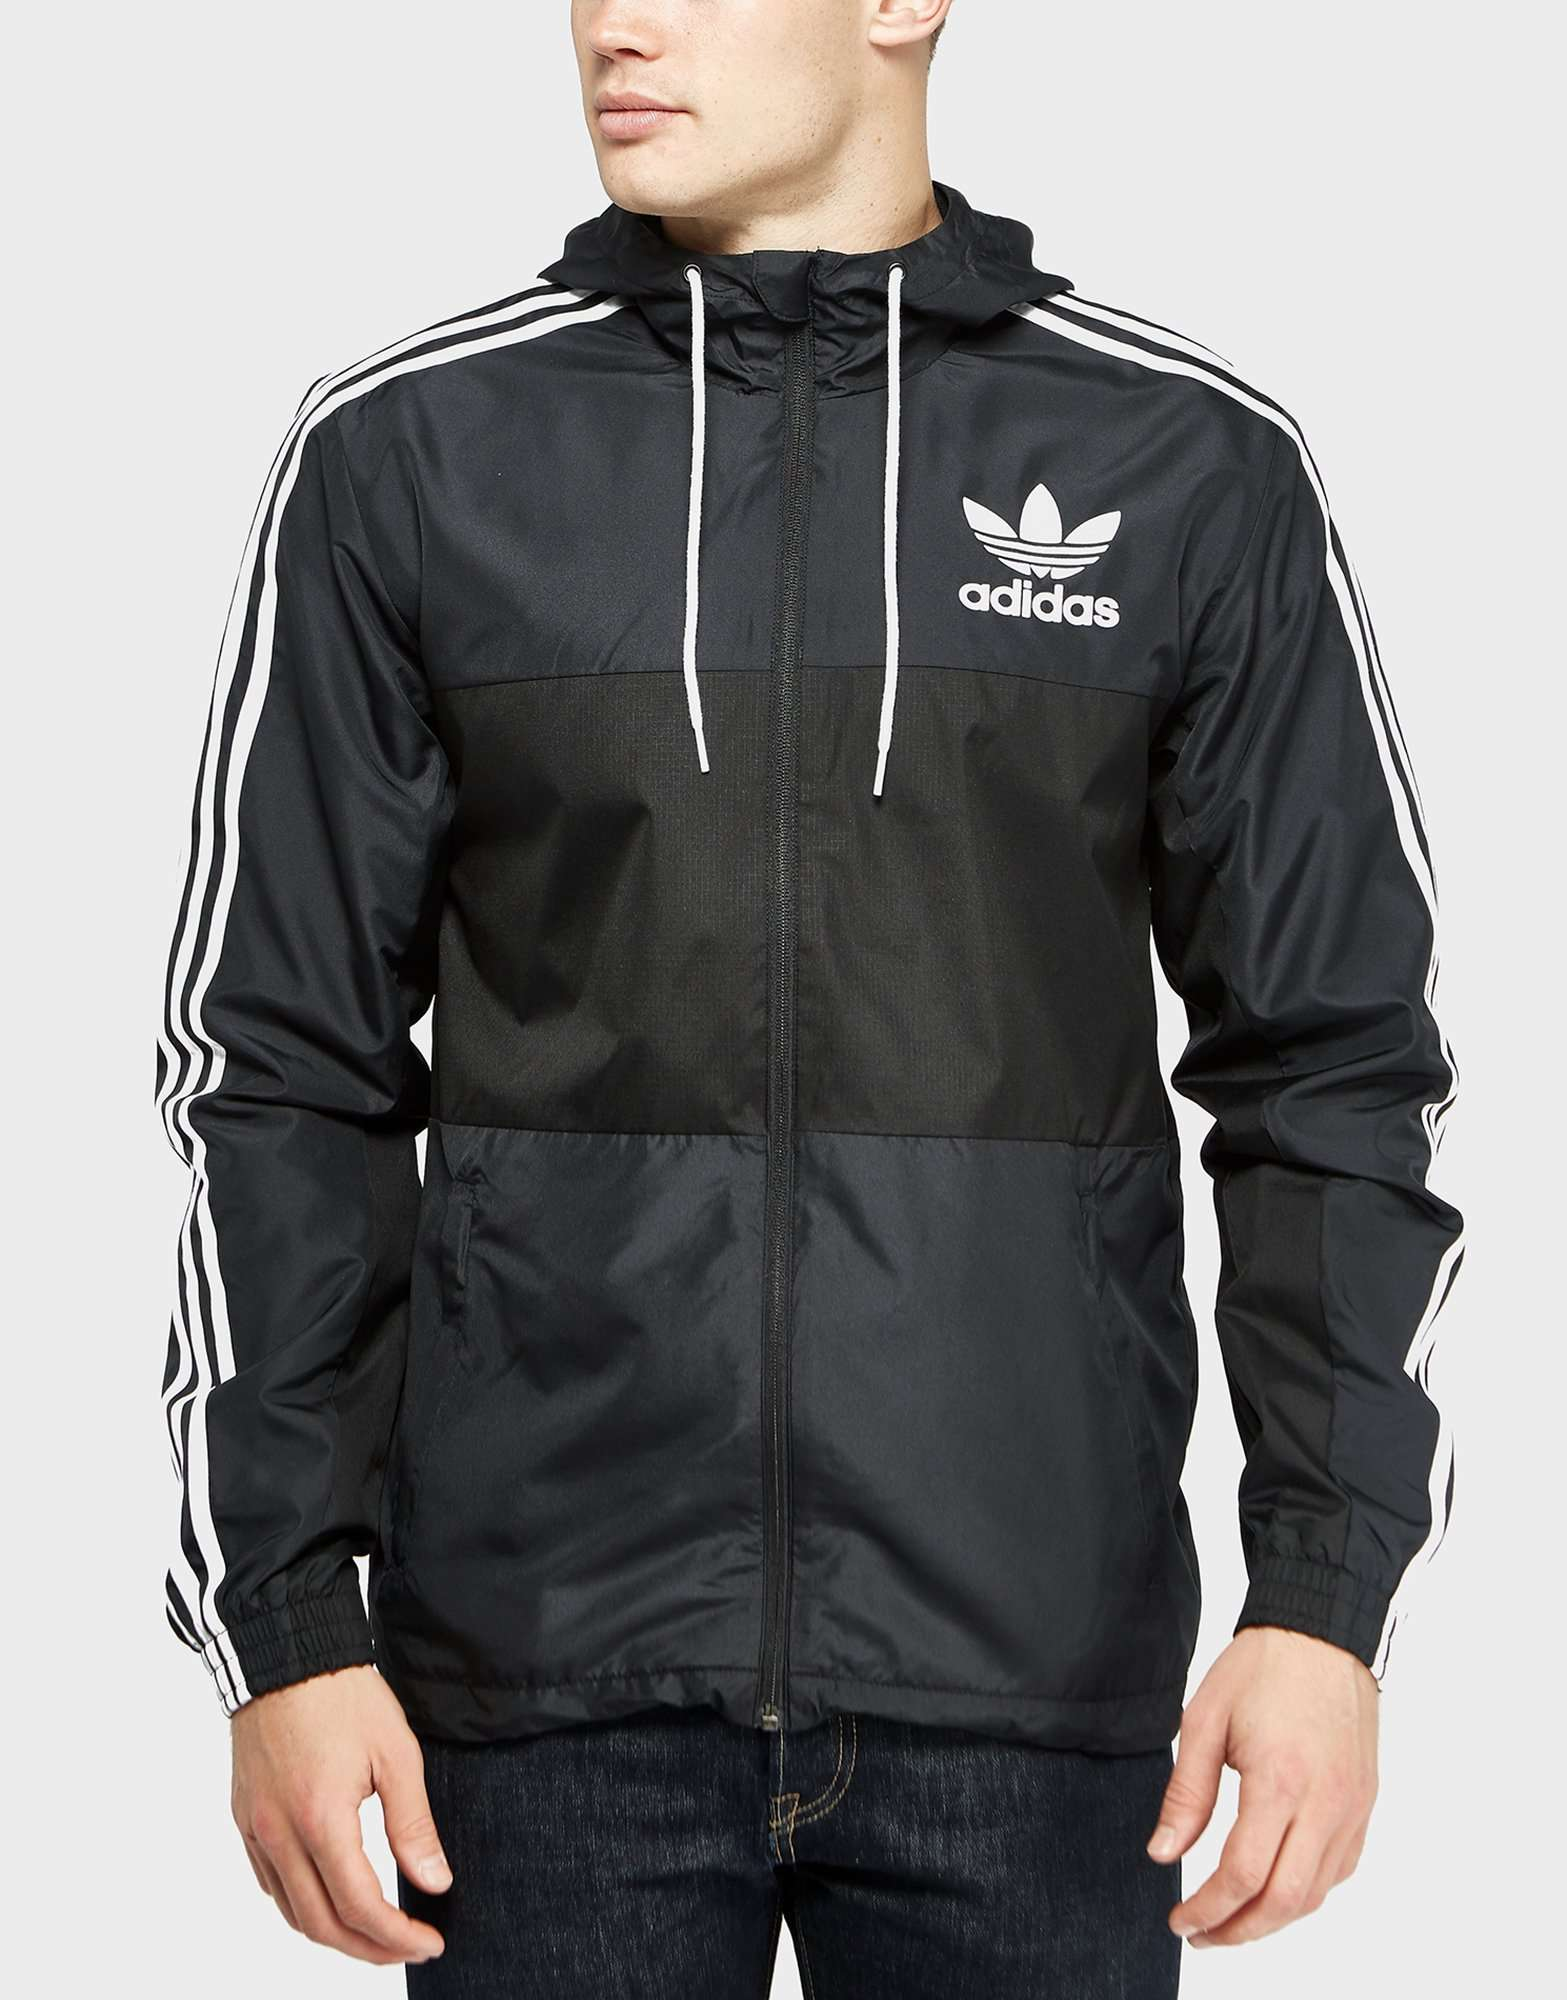 adidas originals california windbreaker lightweight jacket. Black Bedroom Furniture Sets. Home Design Ideas